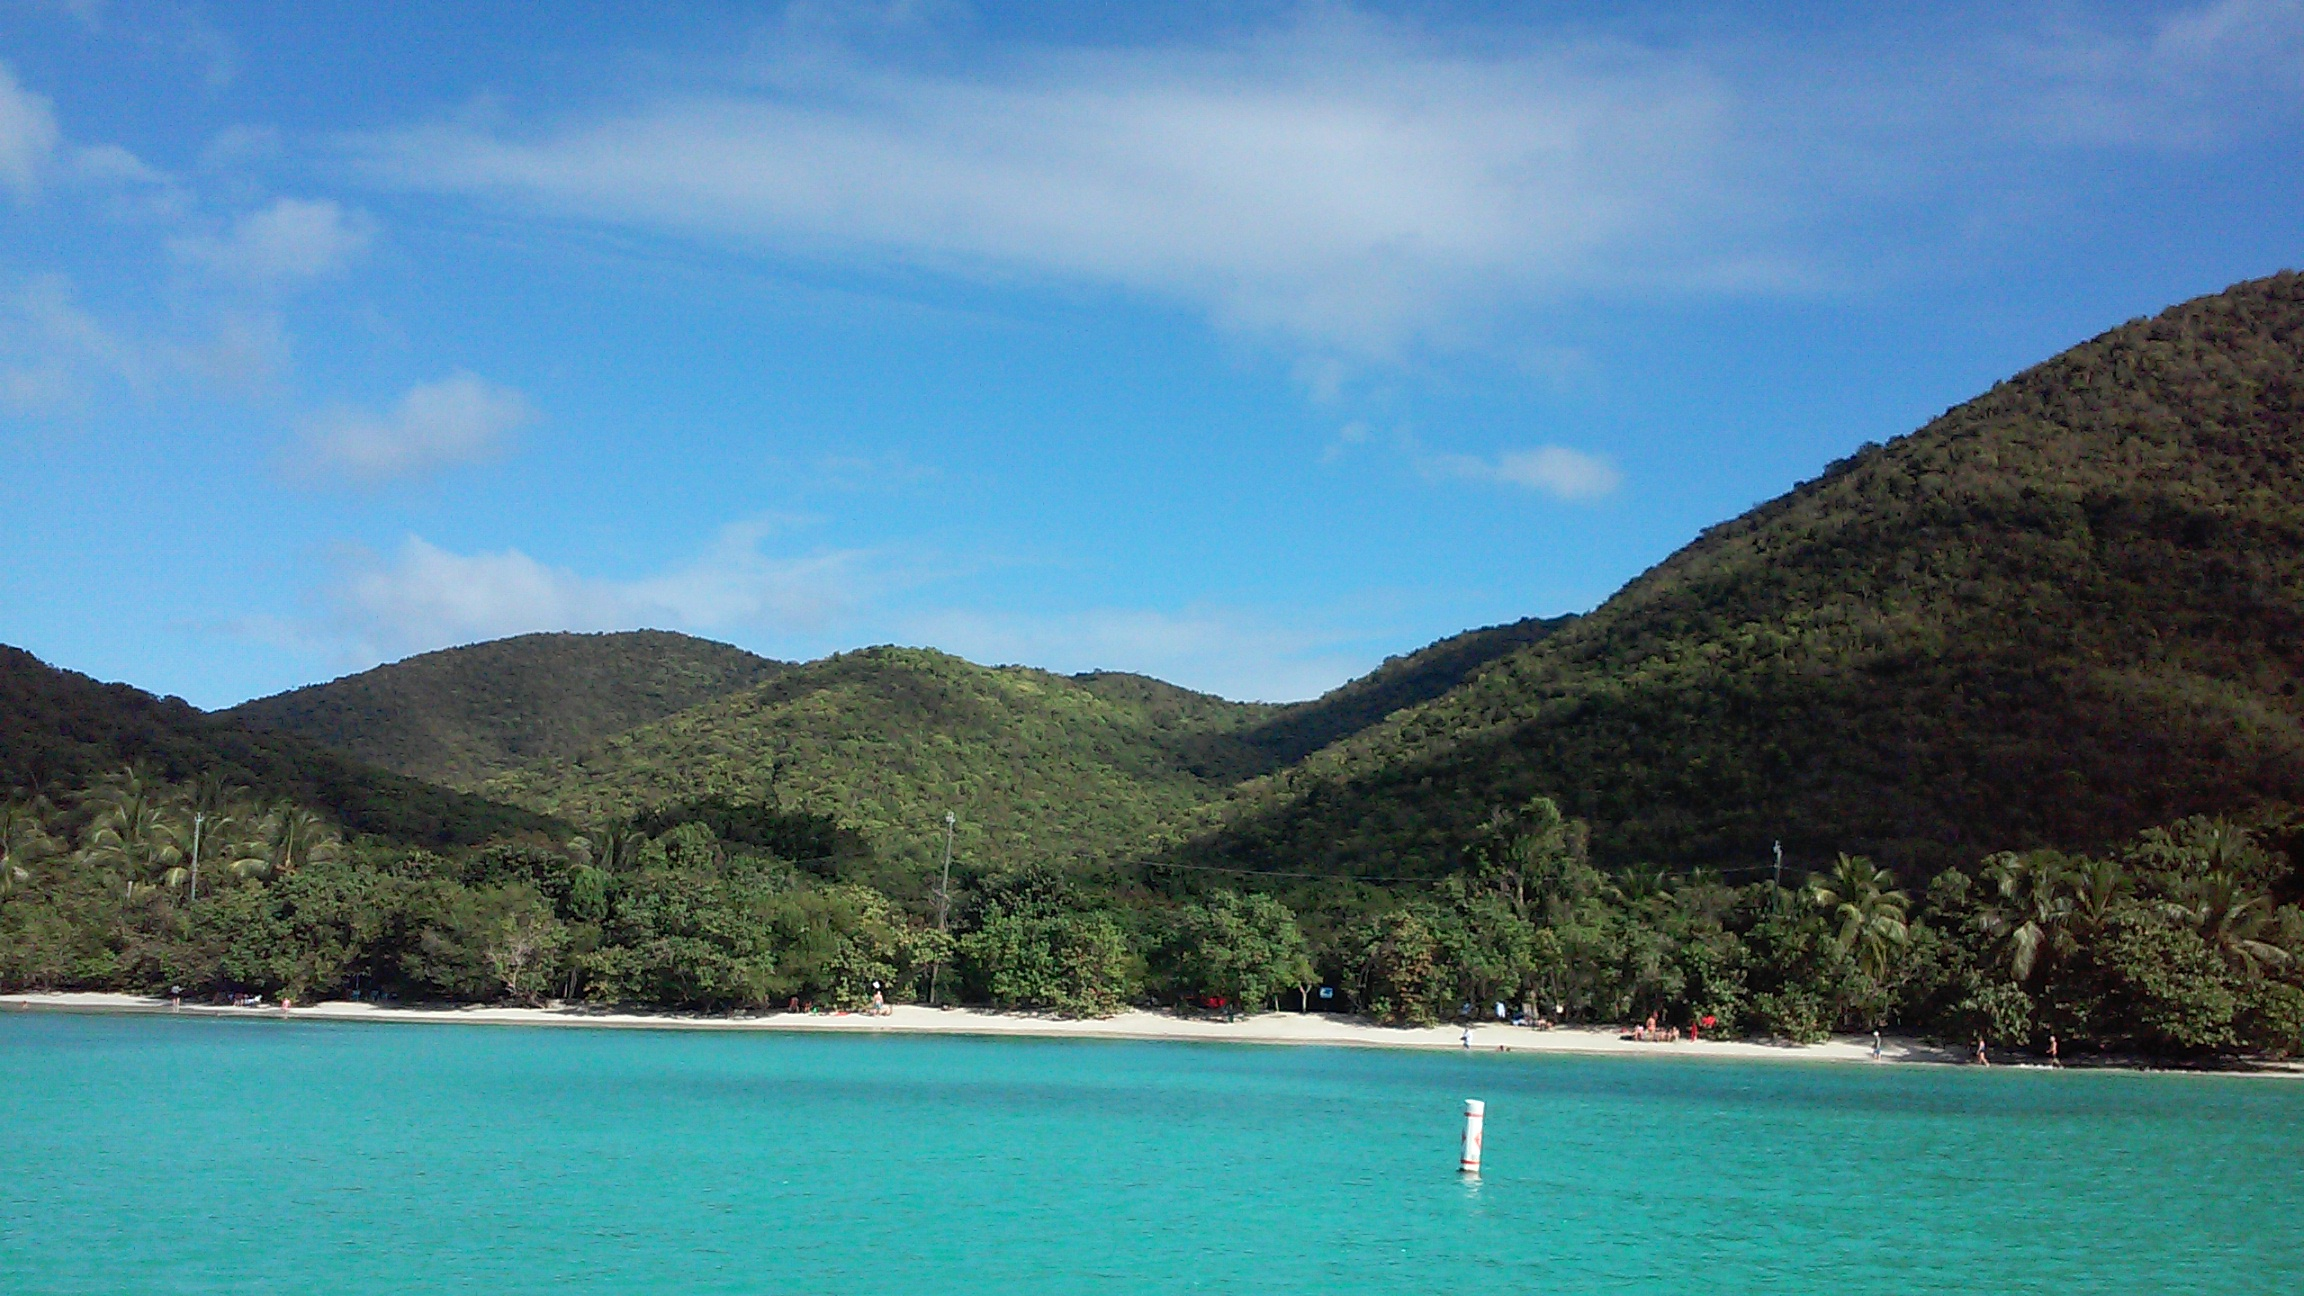 St. John has white sandy beaches lined with palm trees and rimmed with green hills, this photo shows Caneel Bay and Hawksnest Bay